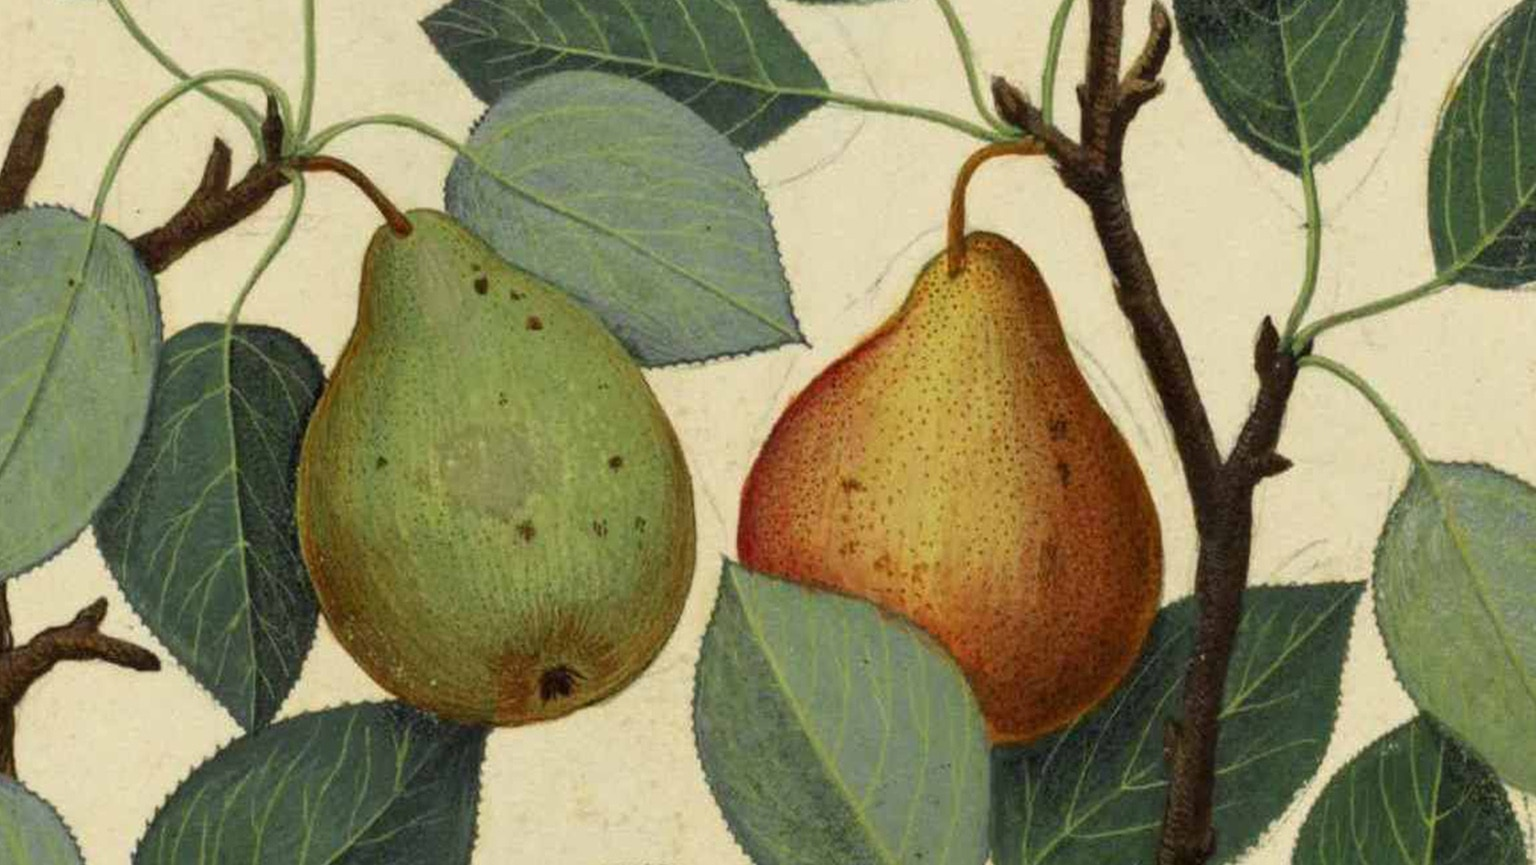 Book II—Stealing Pears: So What?